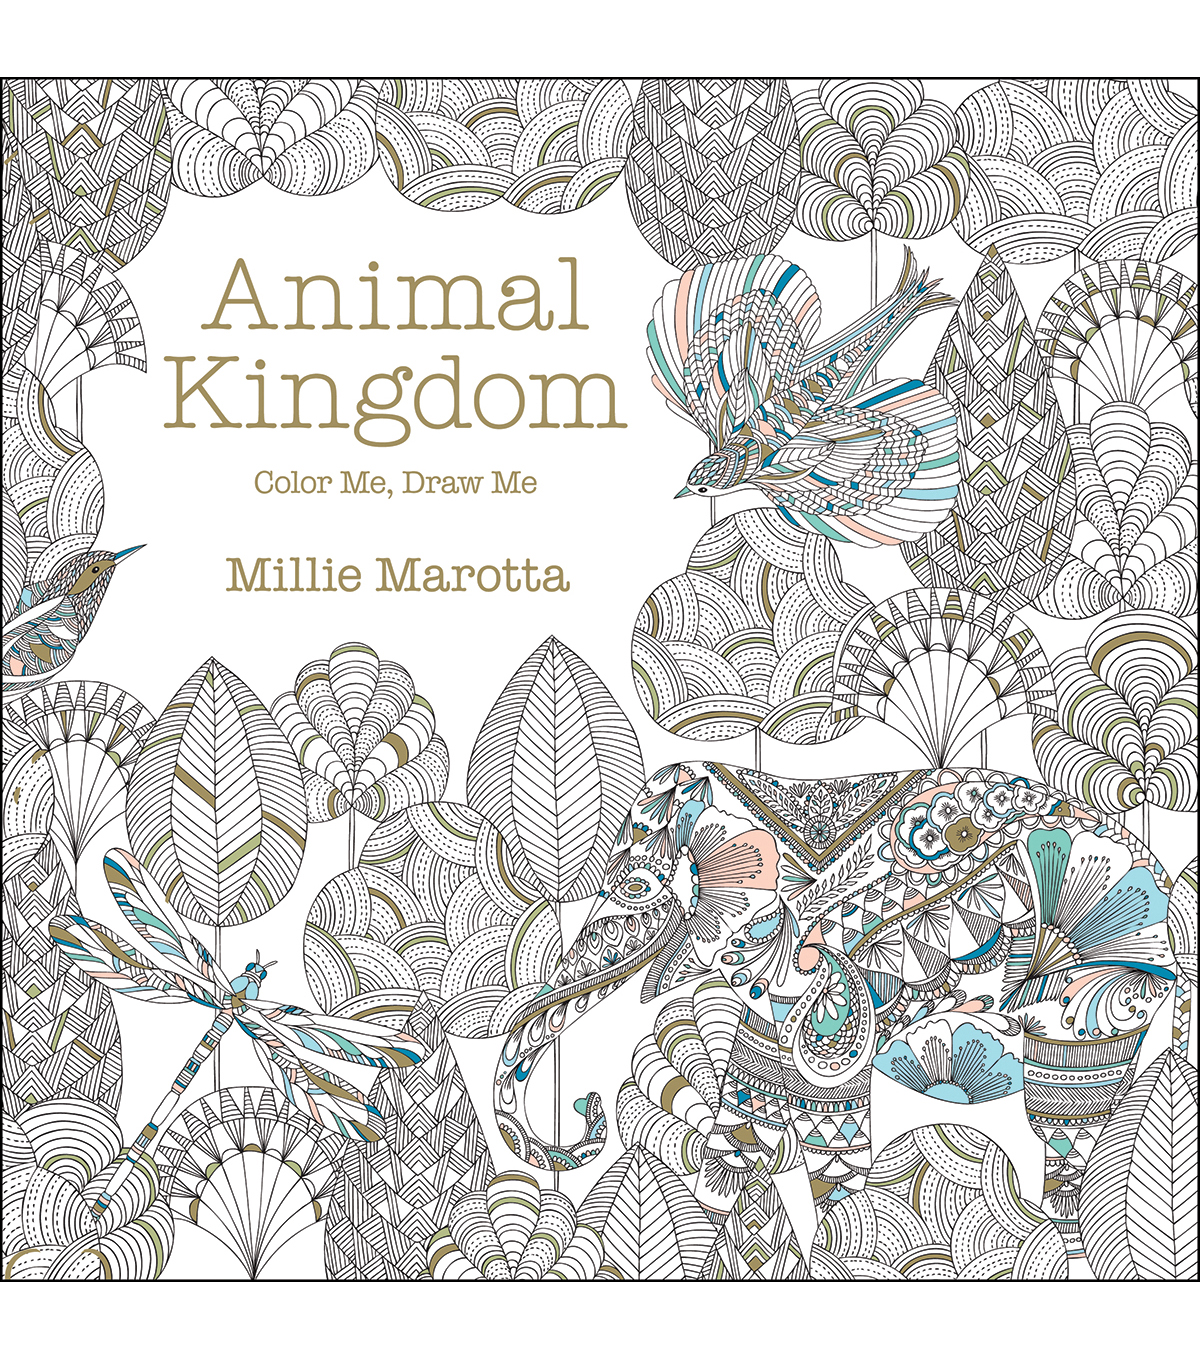 Animal Kingdom Coloring Book: Color Me Draw Me | JOANN